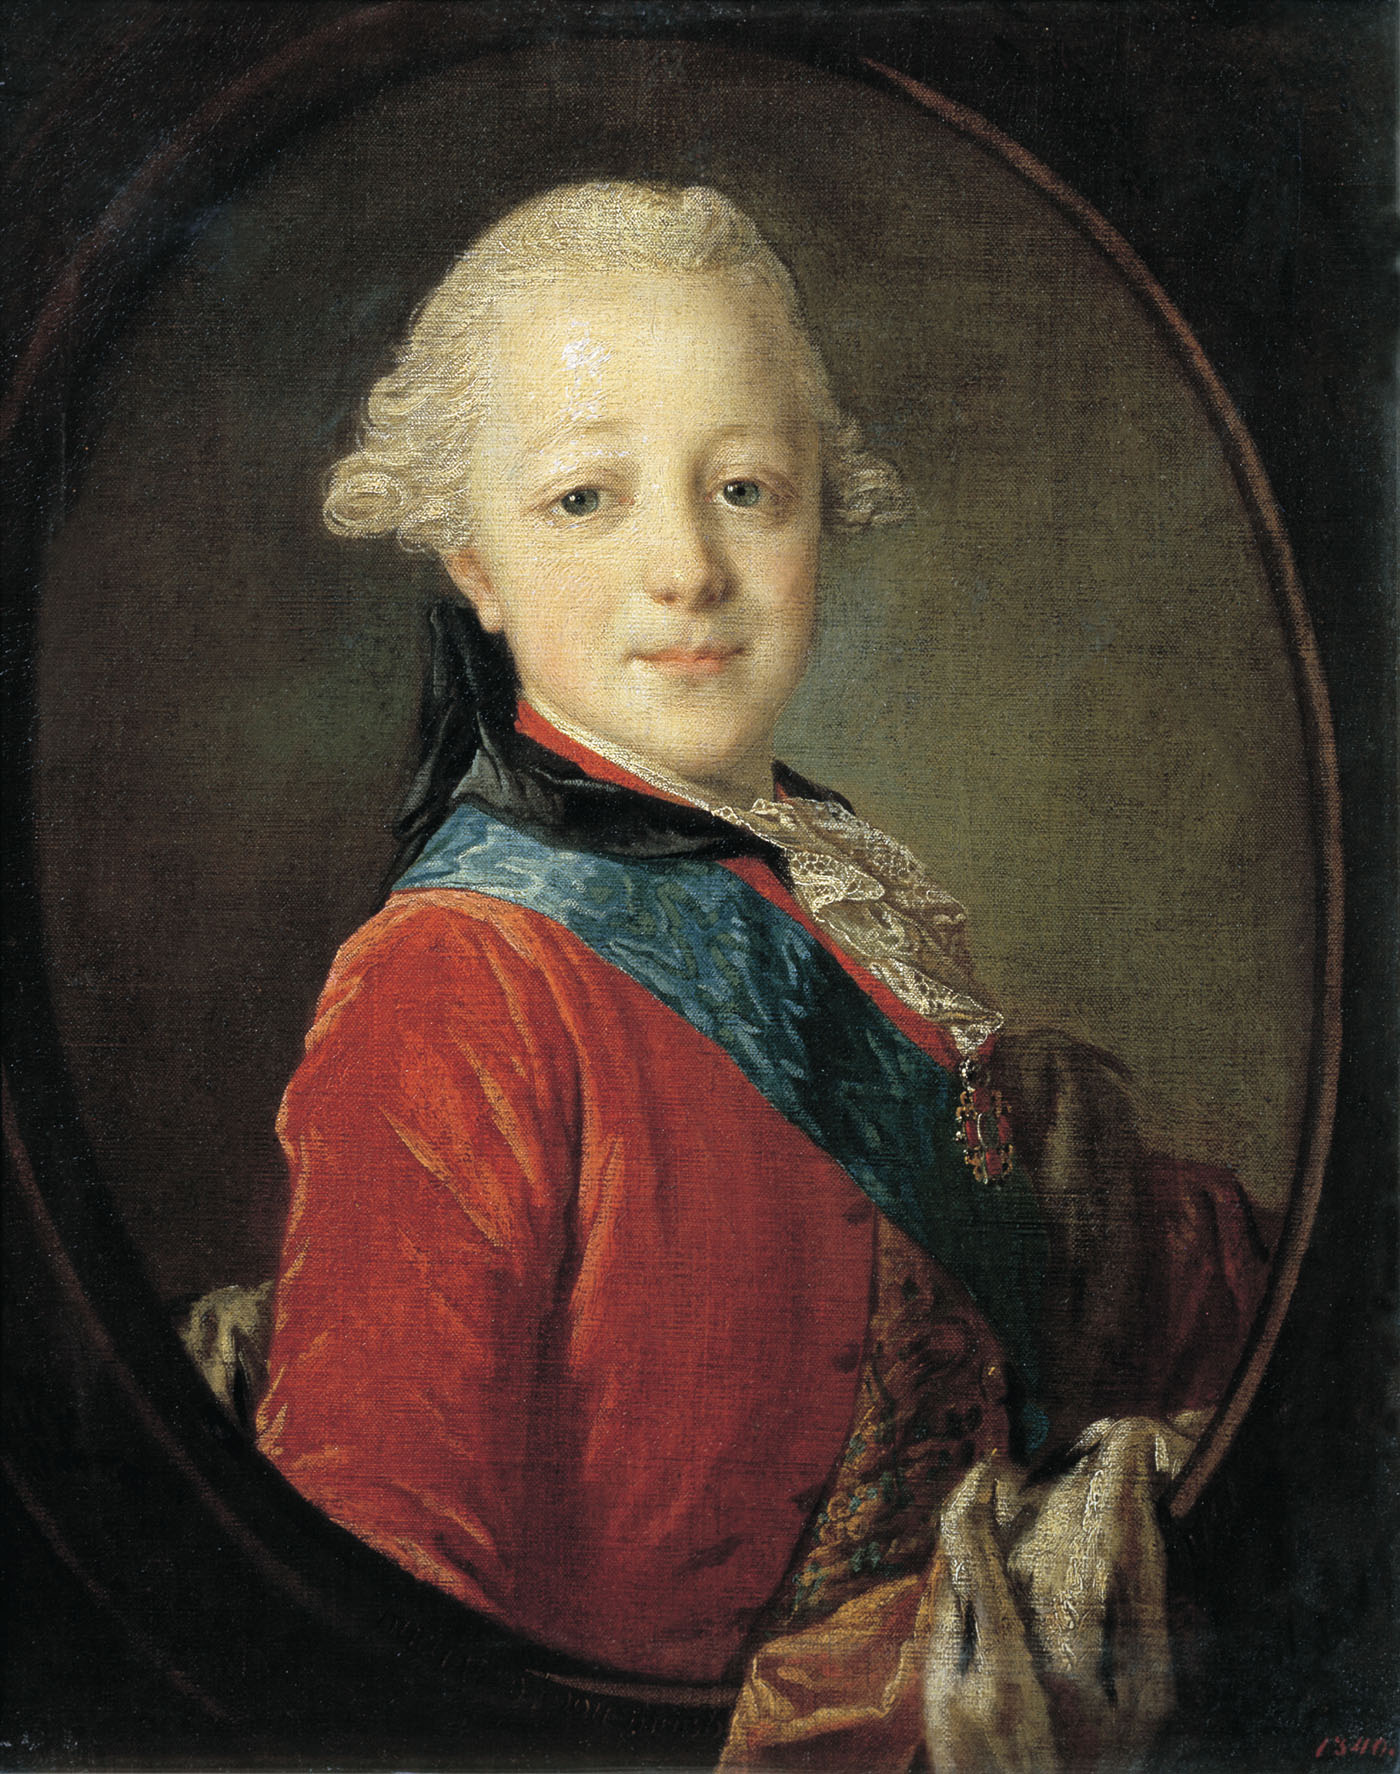 Portrait of Emperor Paul I as a Child, 1761